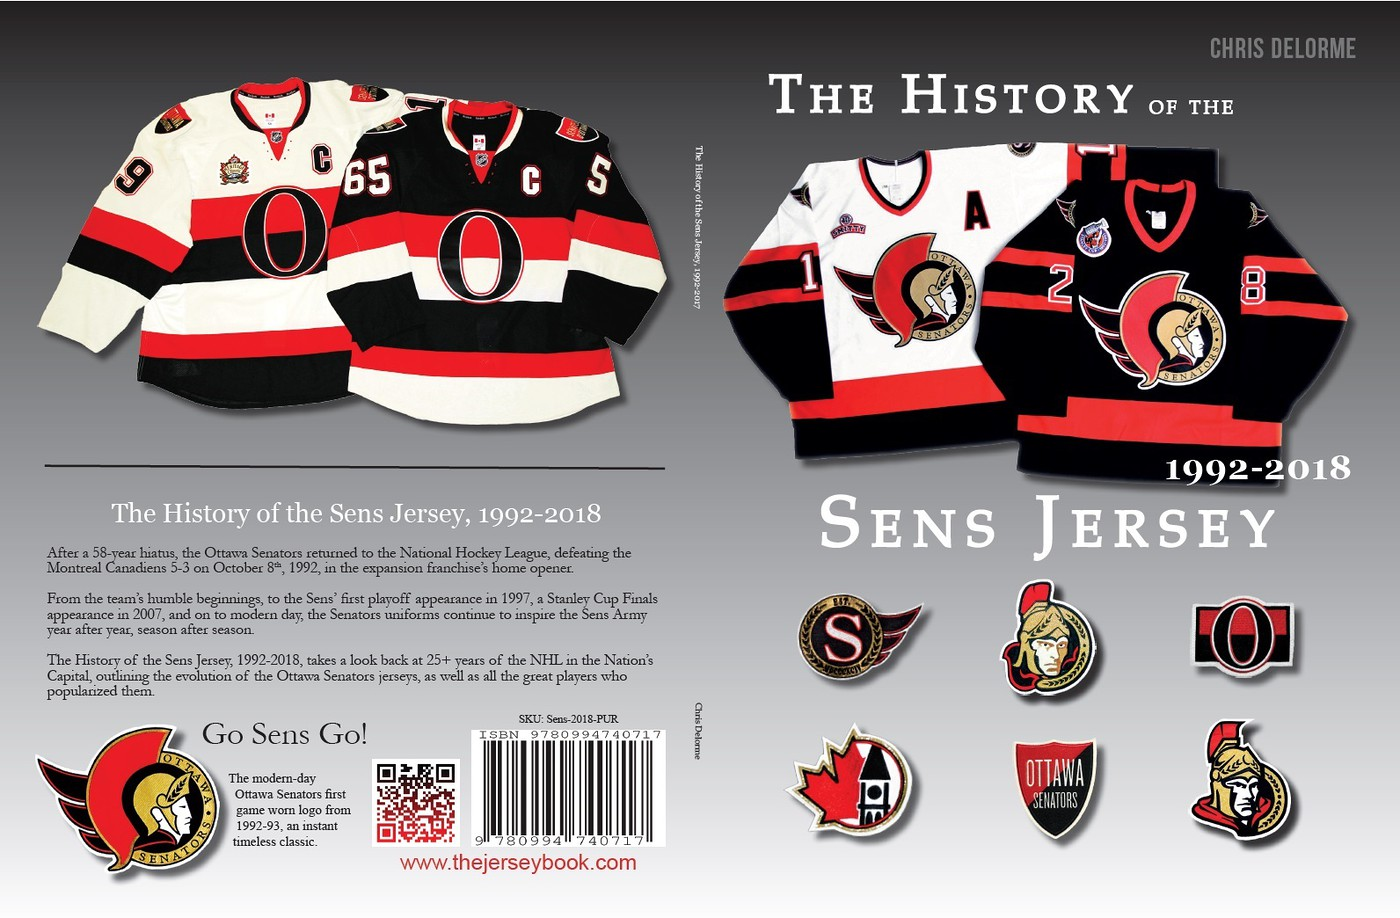 Game Worn Ottawa Senators Jerseys